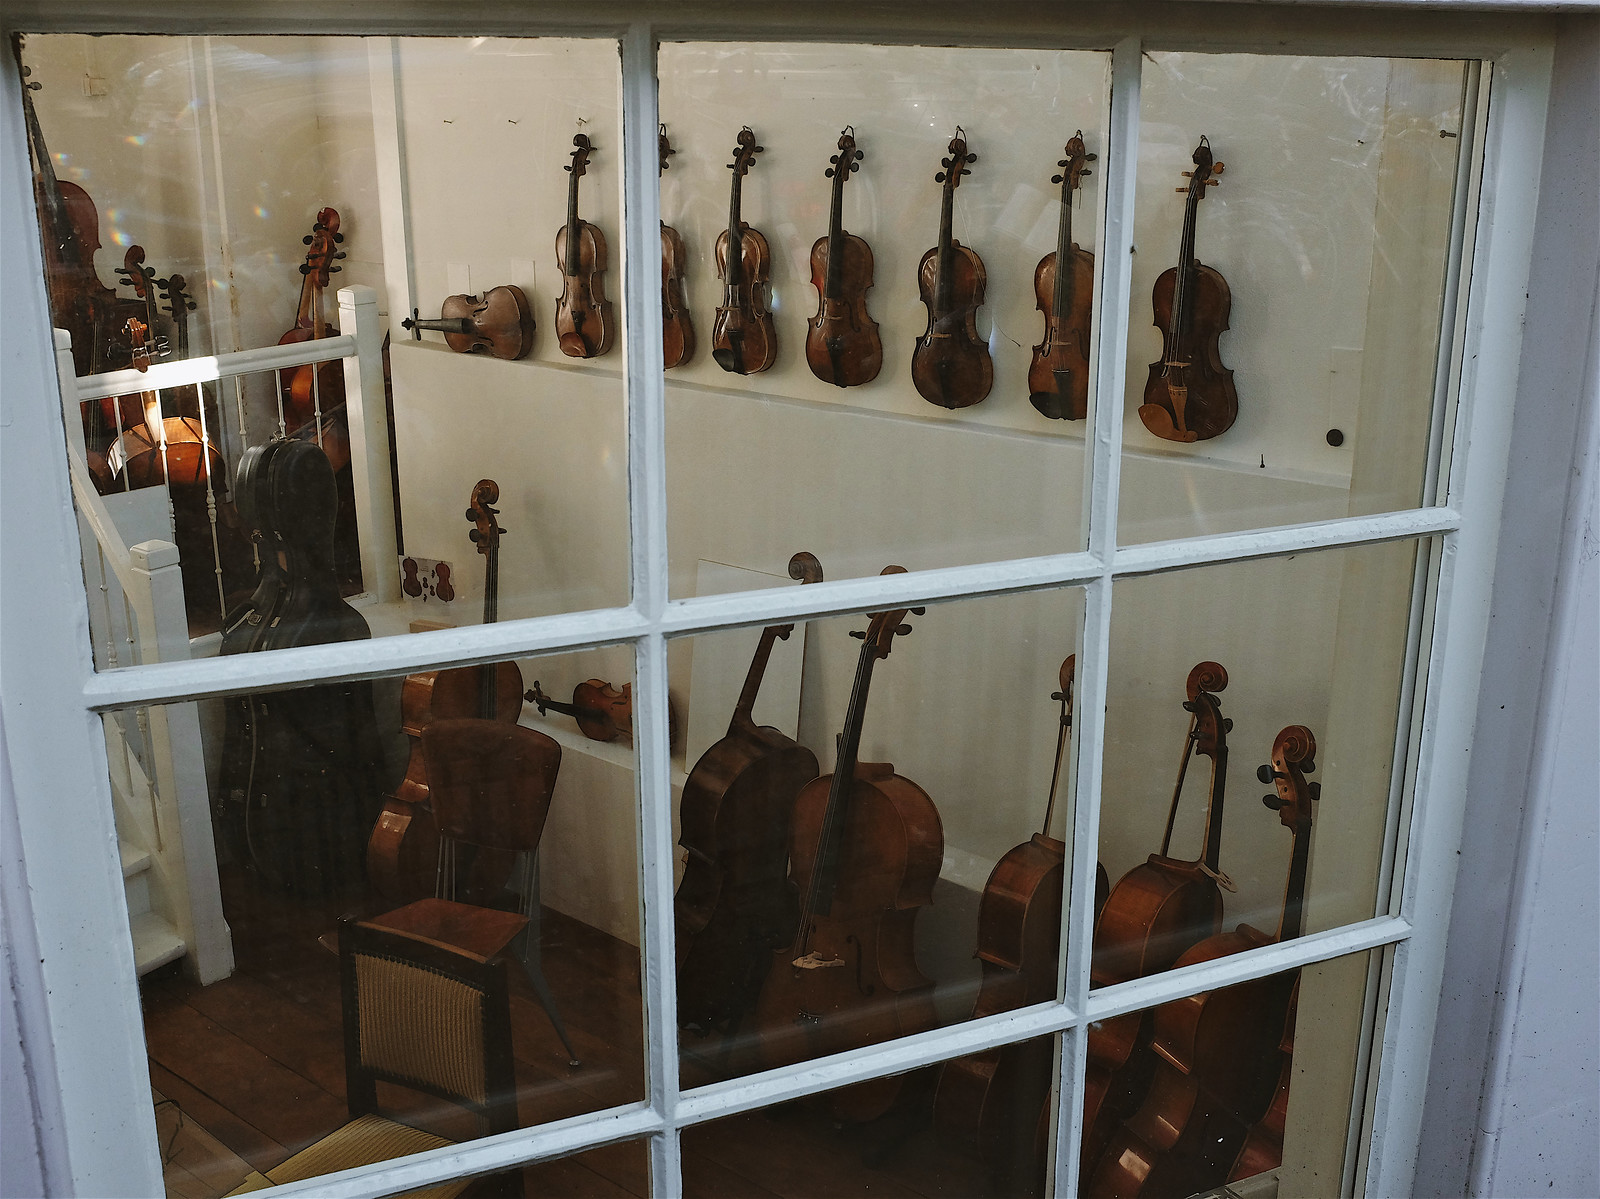 Violins and cellos seen through a window